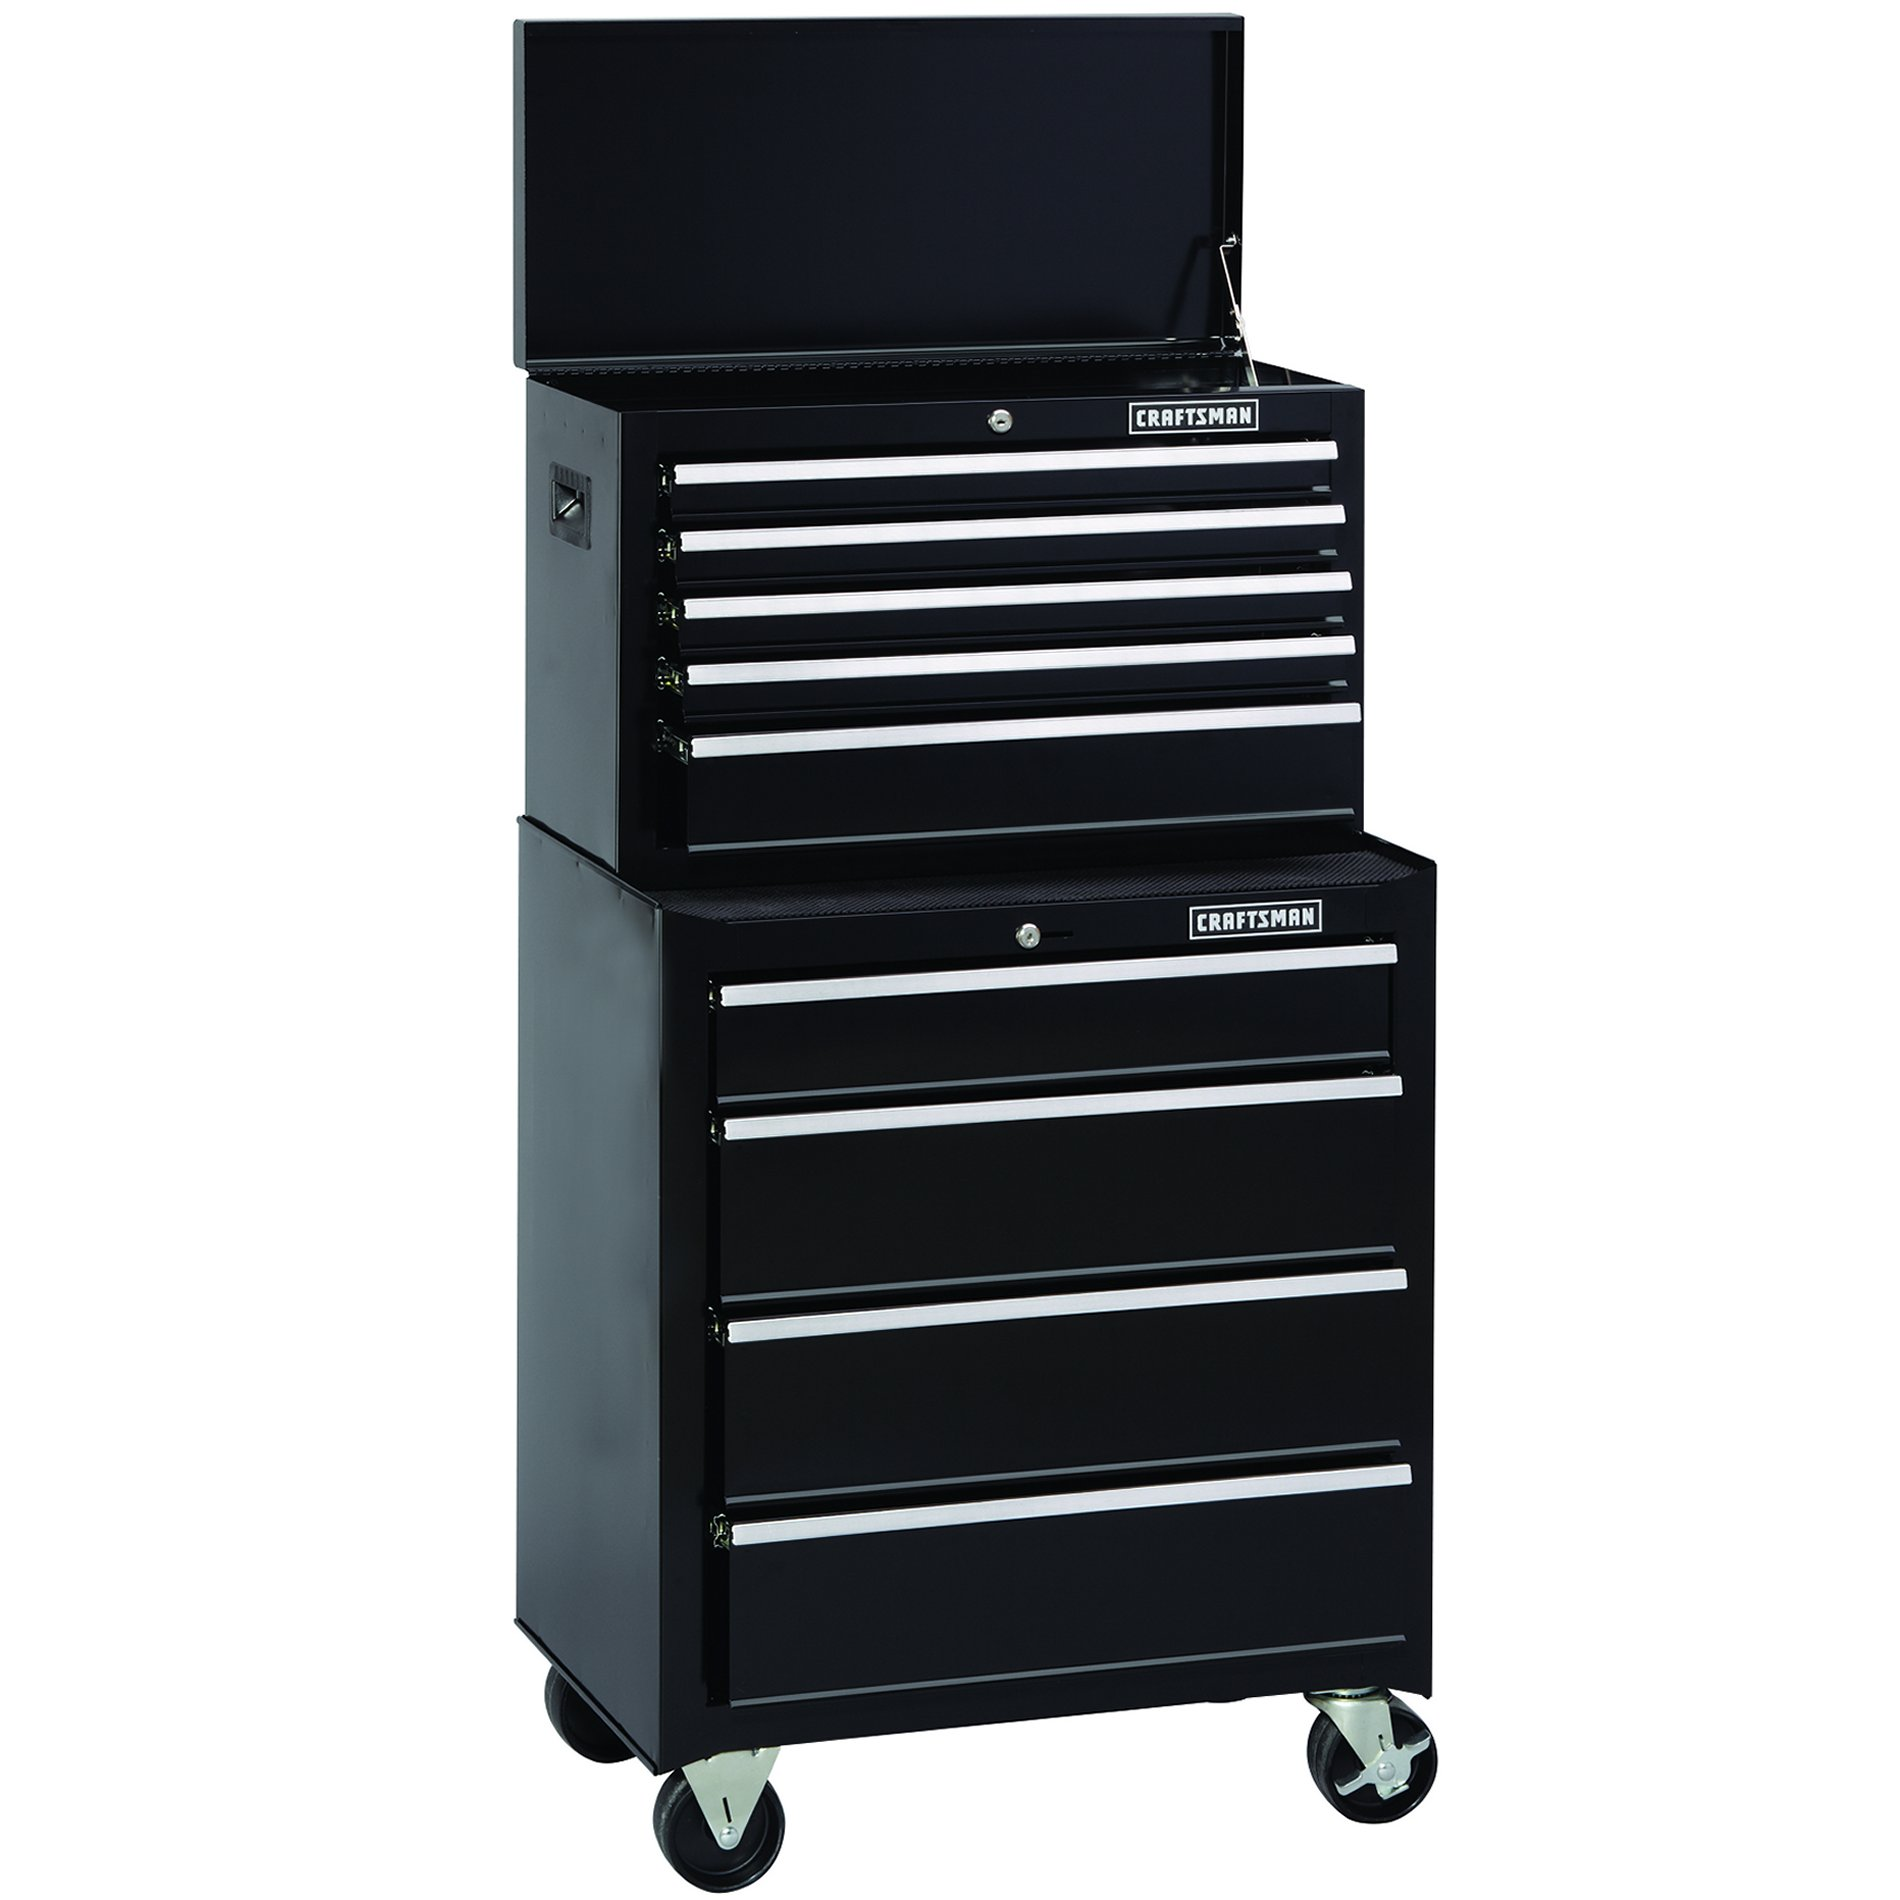 Craftsman 26 in. Wide 5-Drawer Standard Duty Ball-Bearing Top Chest - Black